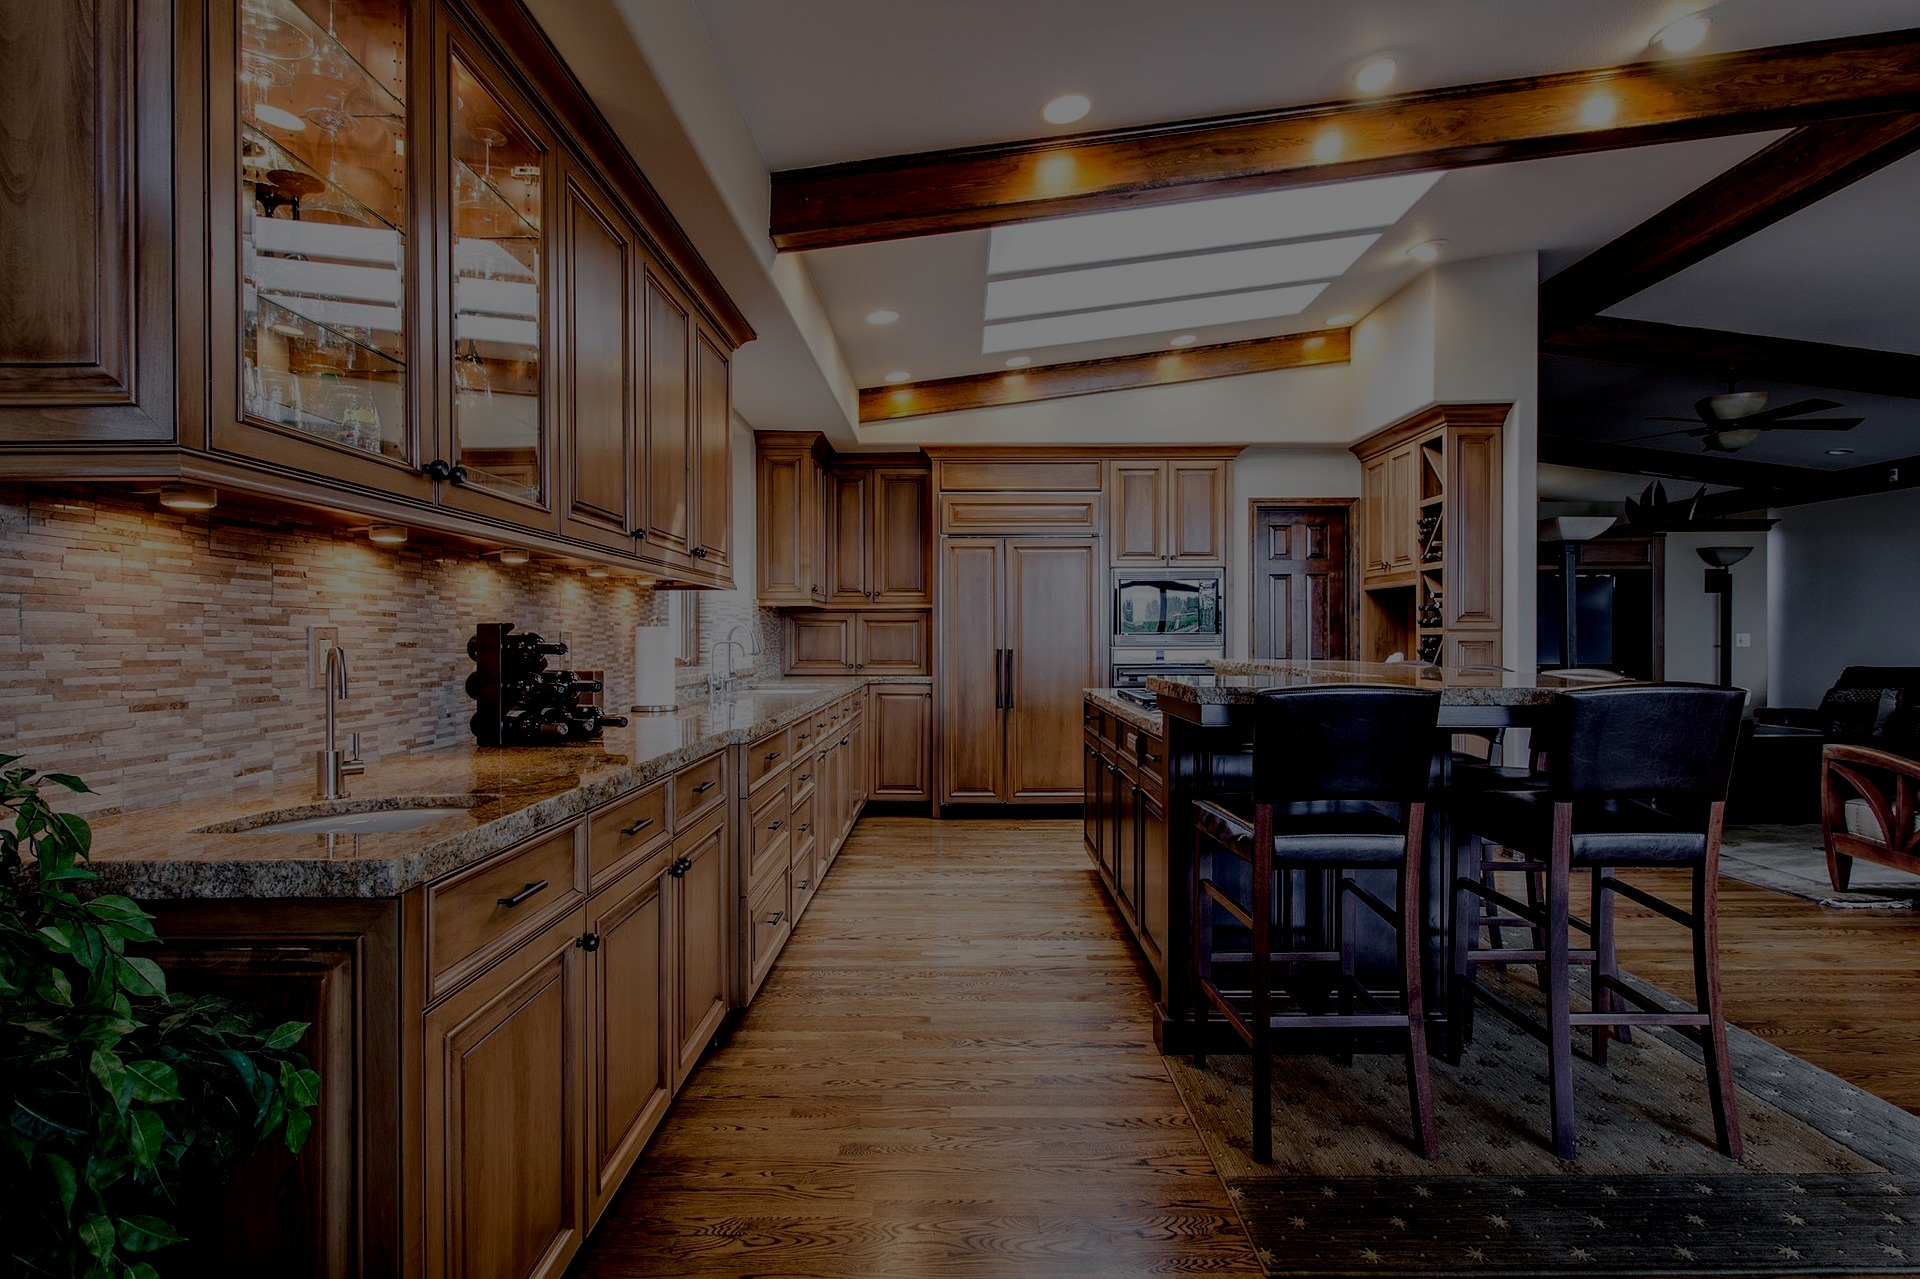 Cabinet Refacing & Kitchen Remodeling